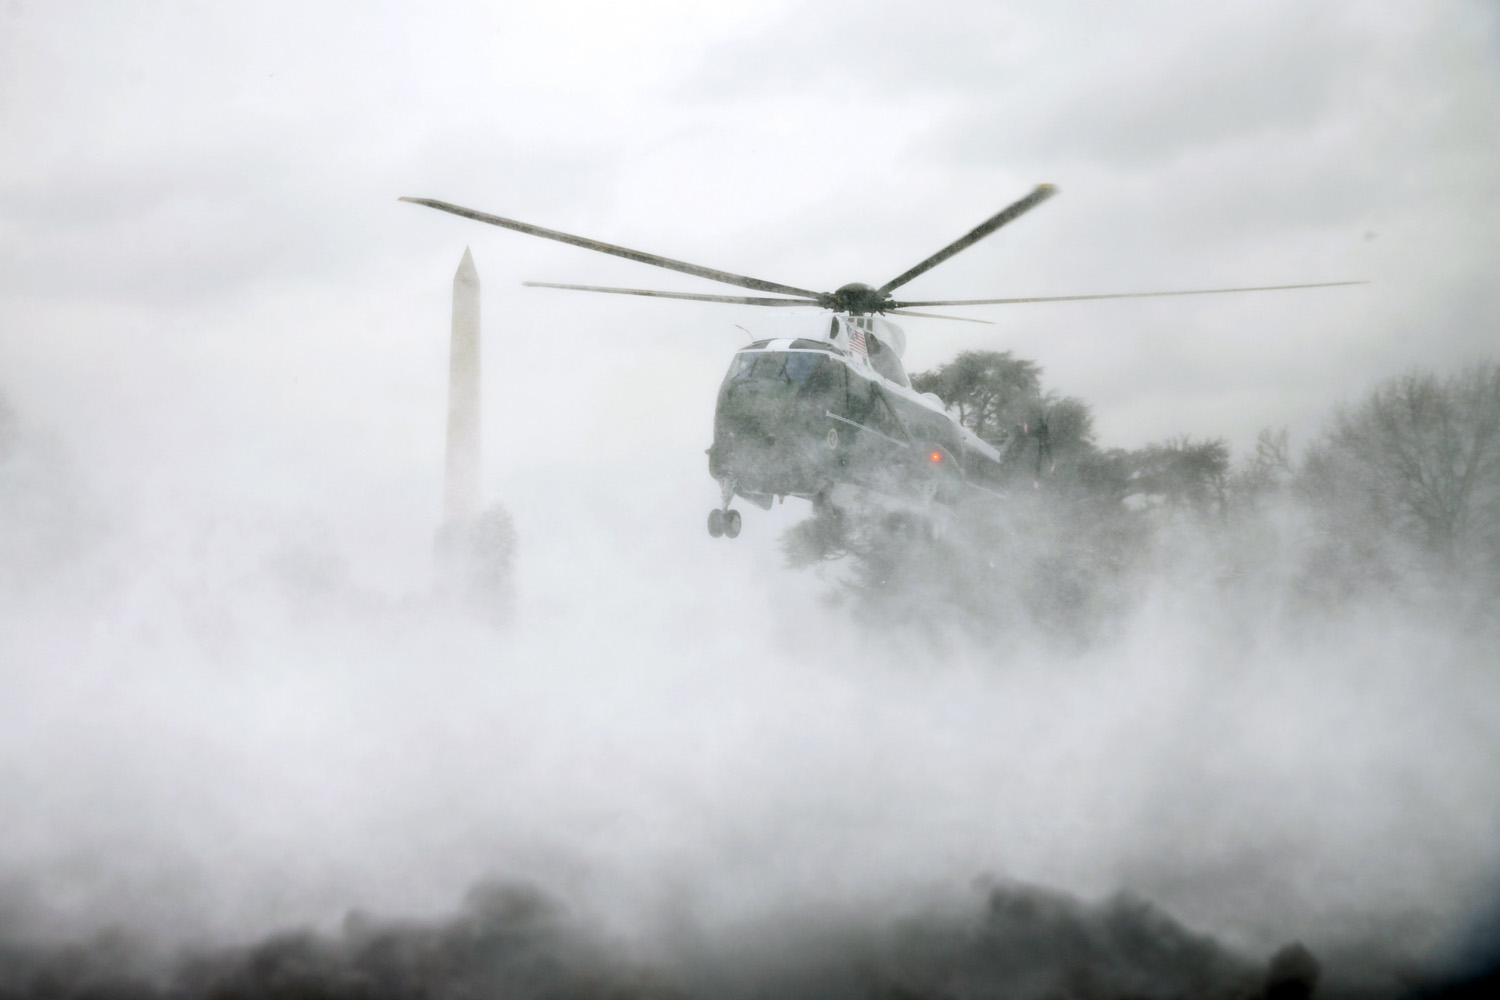 Mar. 17, 2014. Marine One helicopter carrying President Barack Obama arrives on the South Lawn of the White House in Washington, after Obama visited wounded service members at Walter Reed National Military Medical Center.